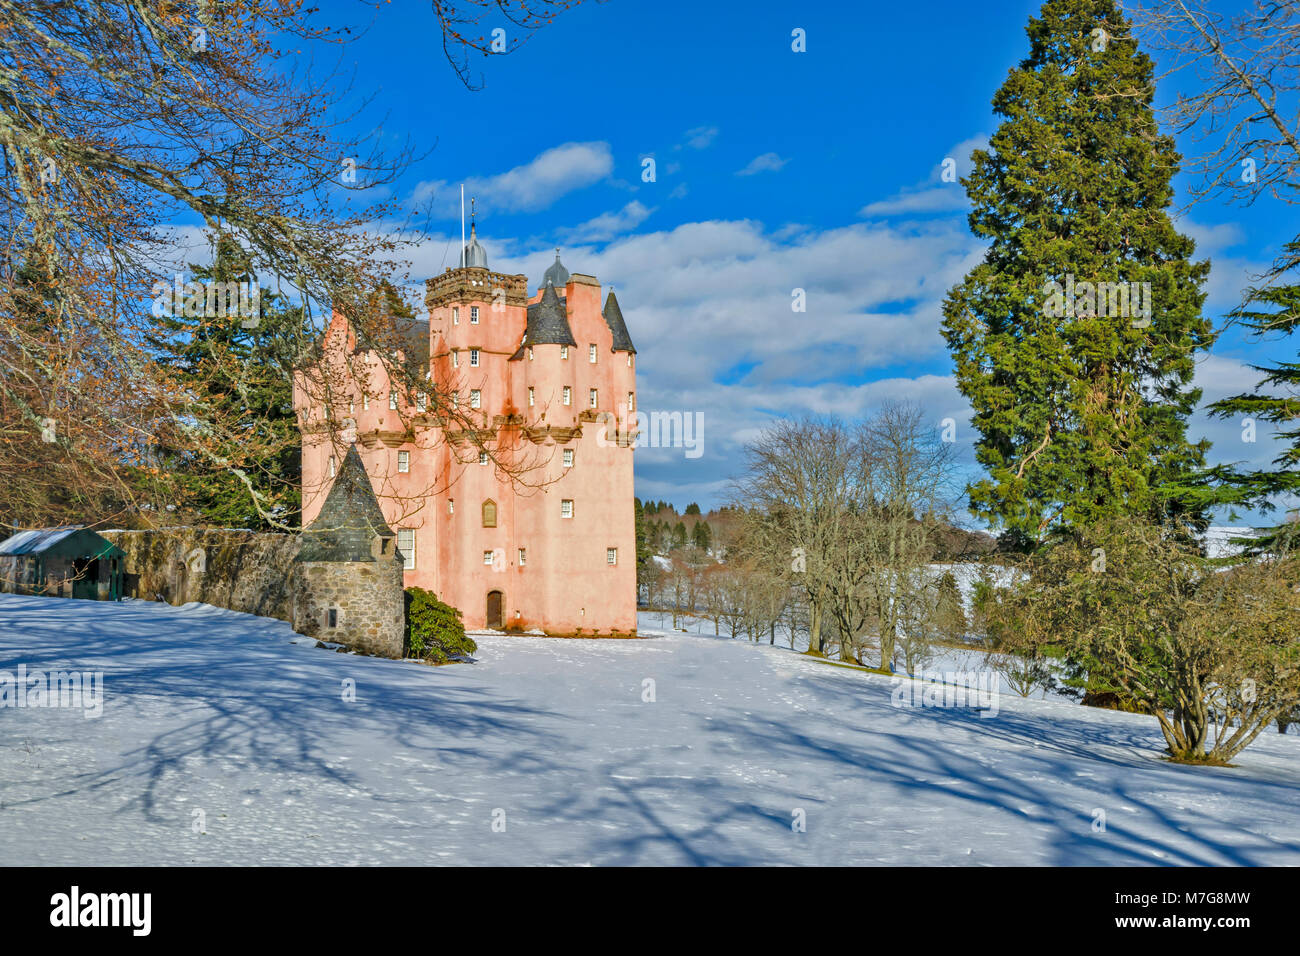 CRAIGIEVAR CASTLE ABERDEENSHIRE SCOTLAND A BLUE SKY  THE PINK TOWER SURROUNDED BY BEECH AND FIR TREES AND WINTER - Stock Image